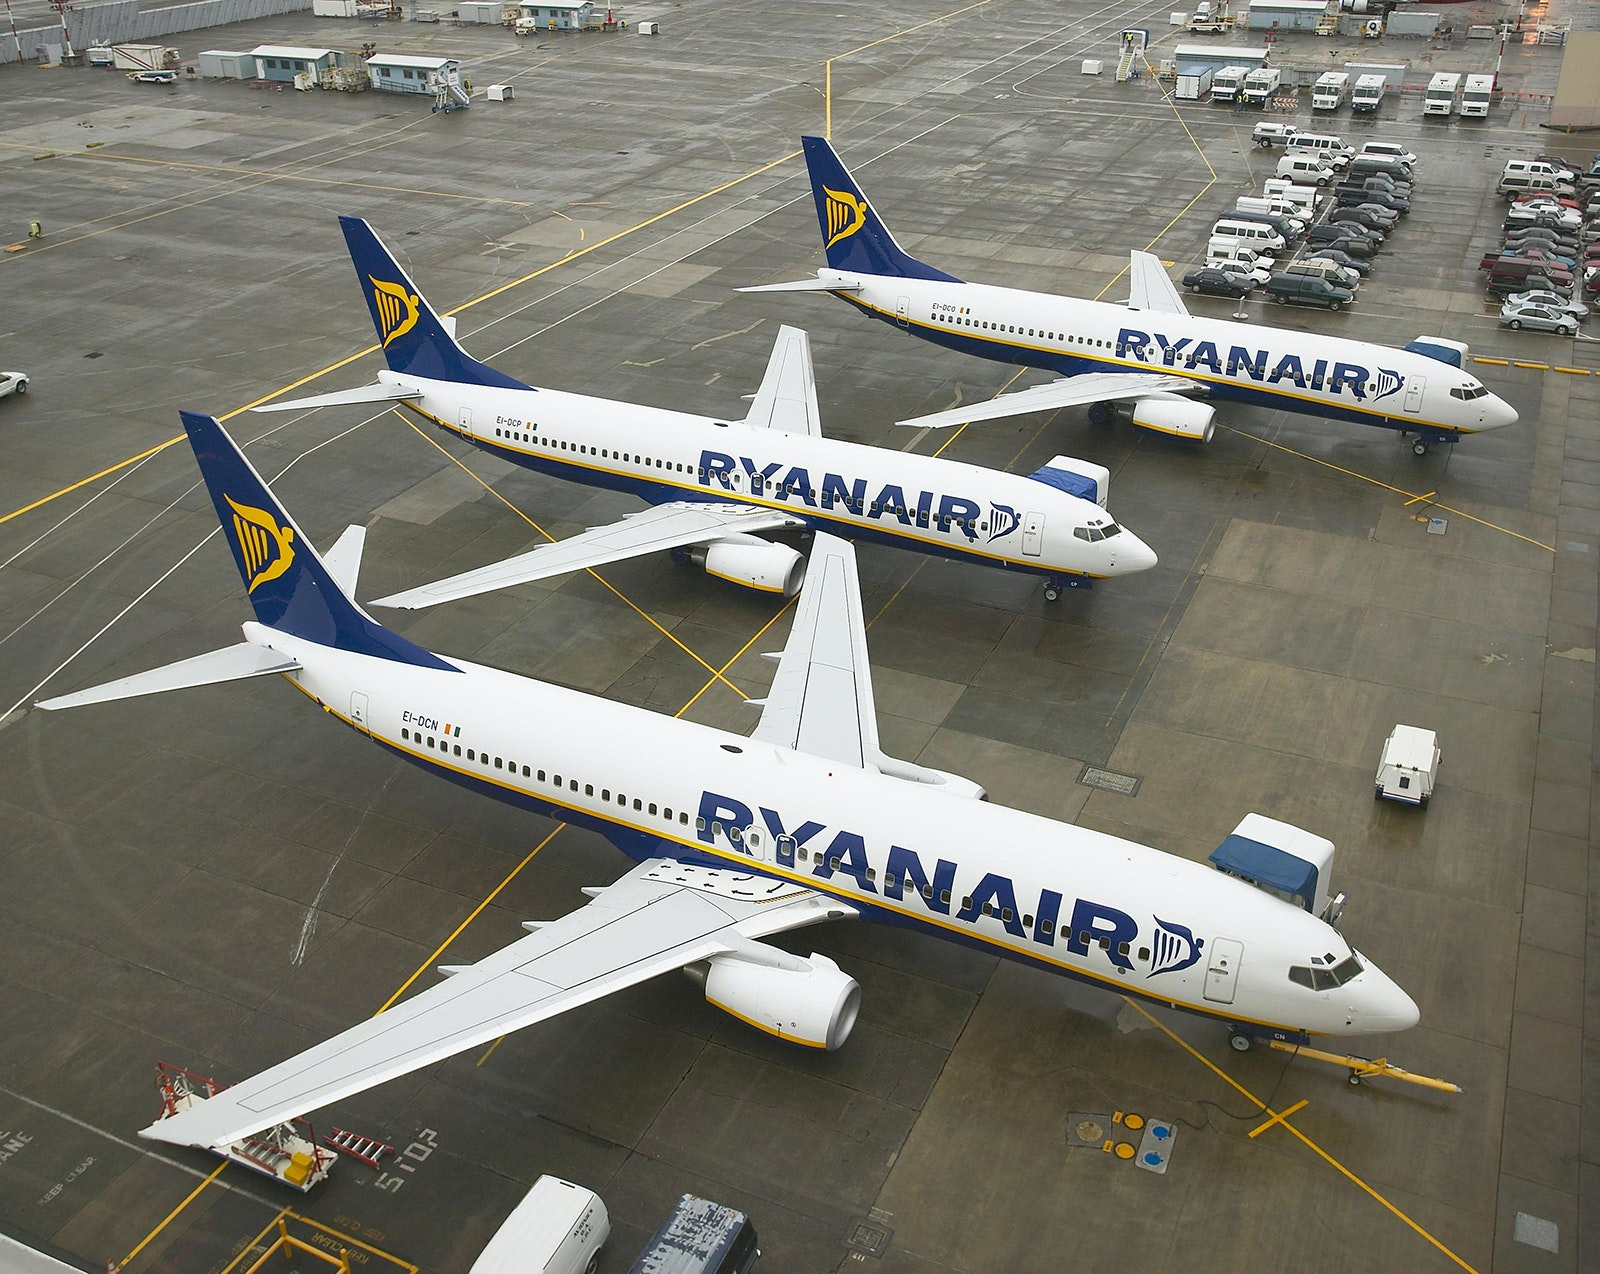 RyanAir is a popular low-cost airline in Europe.